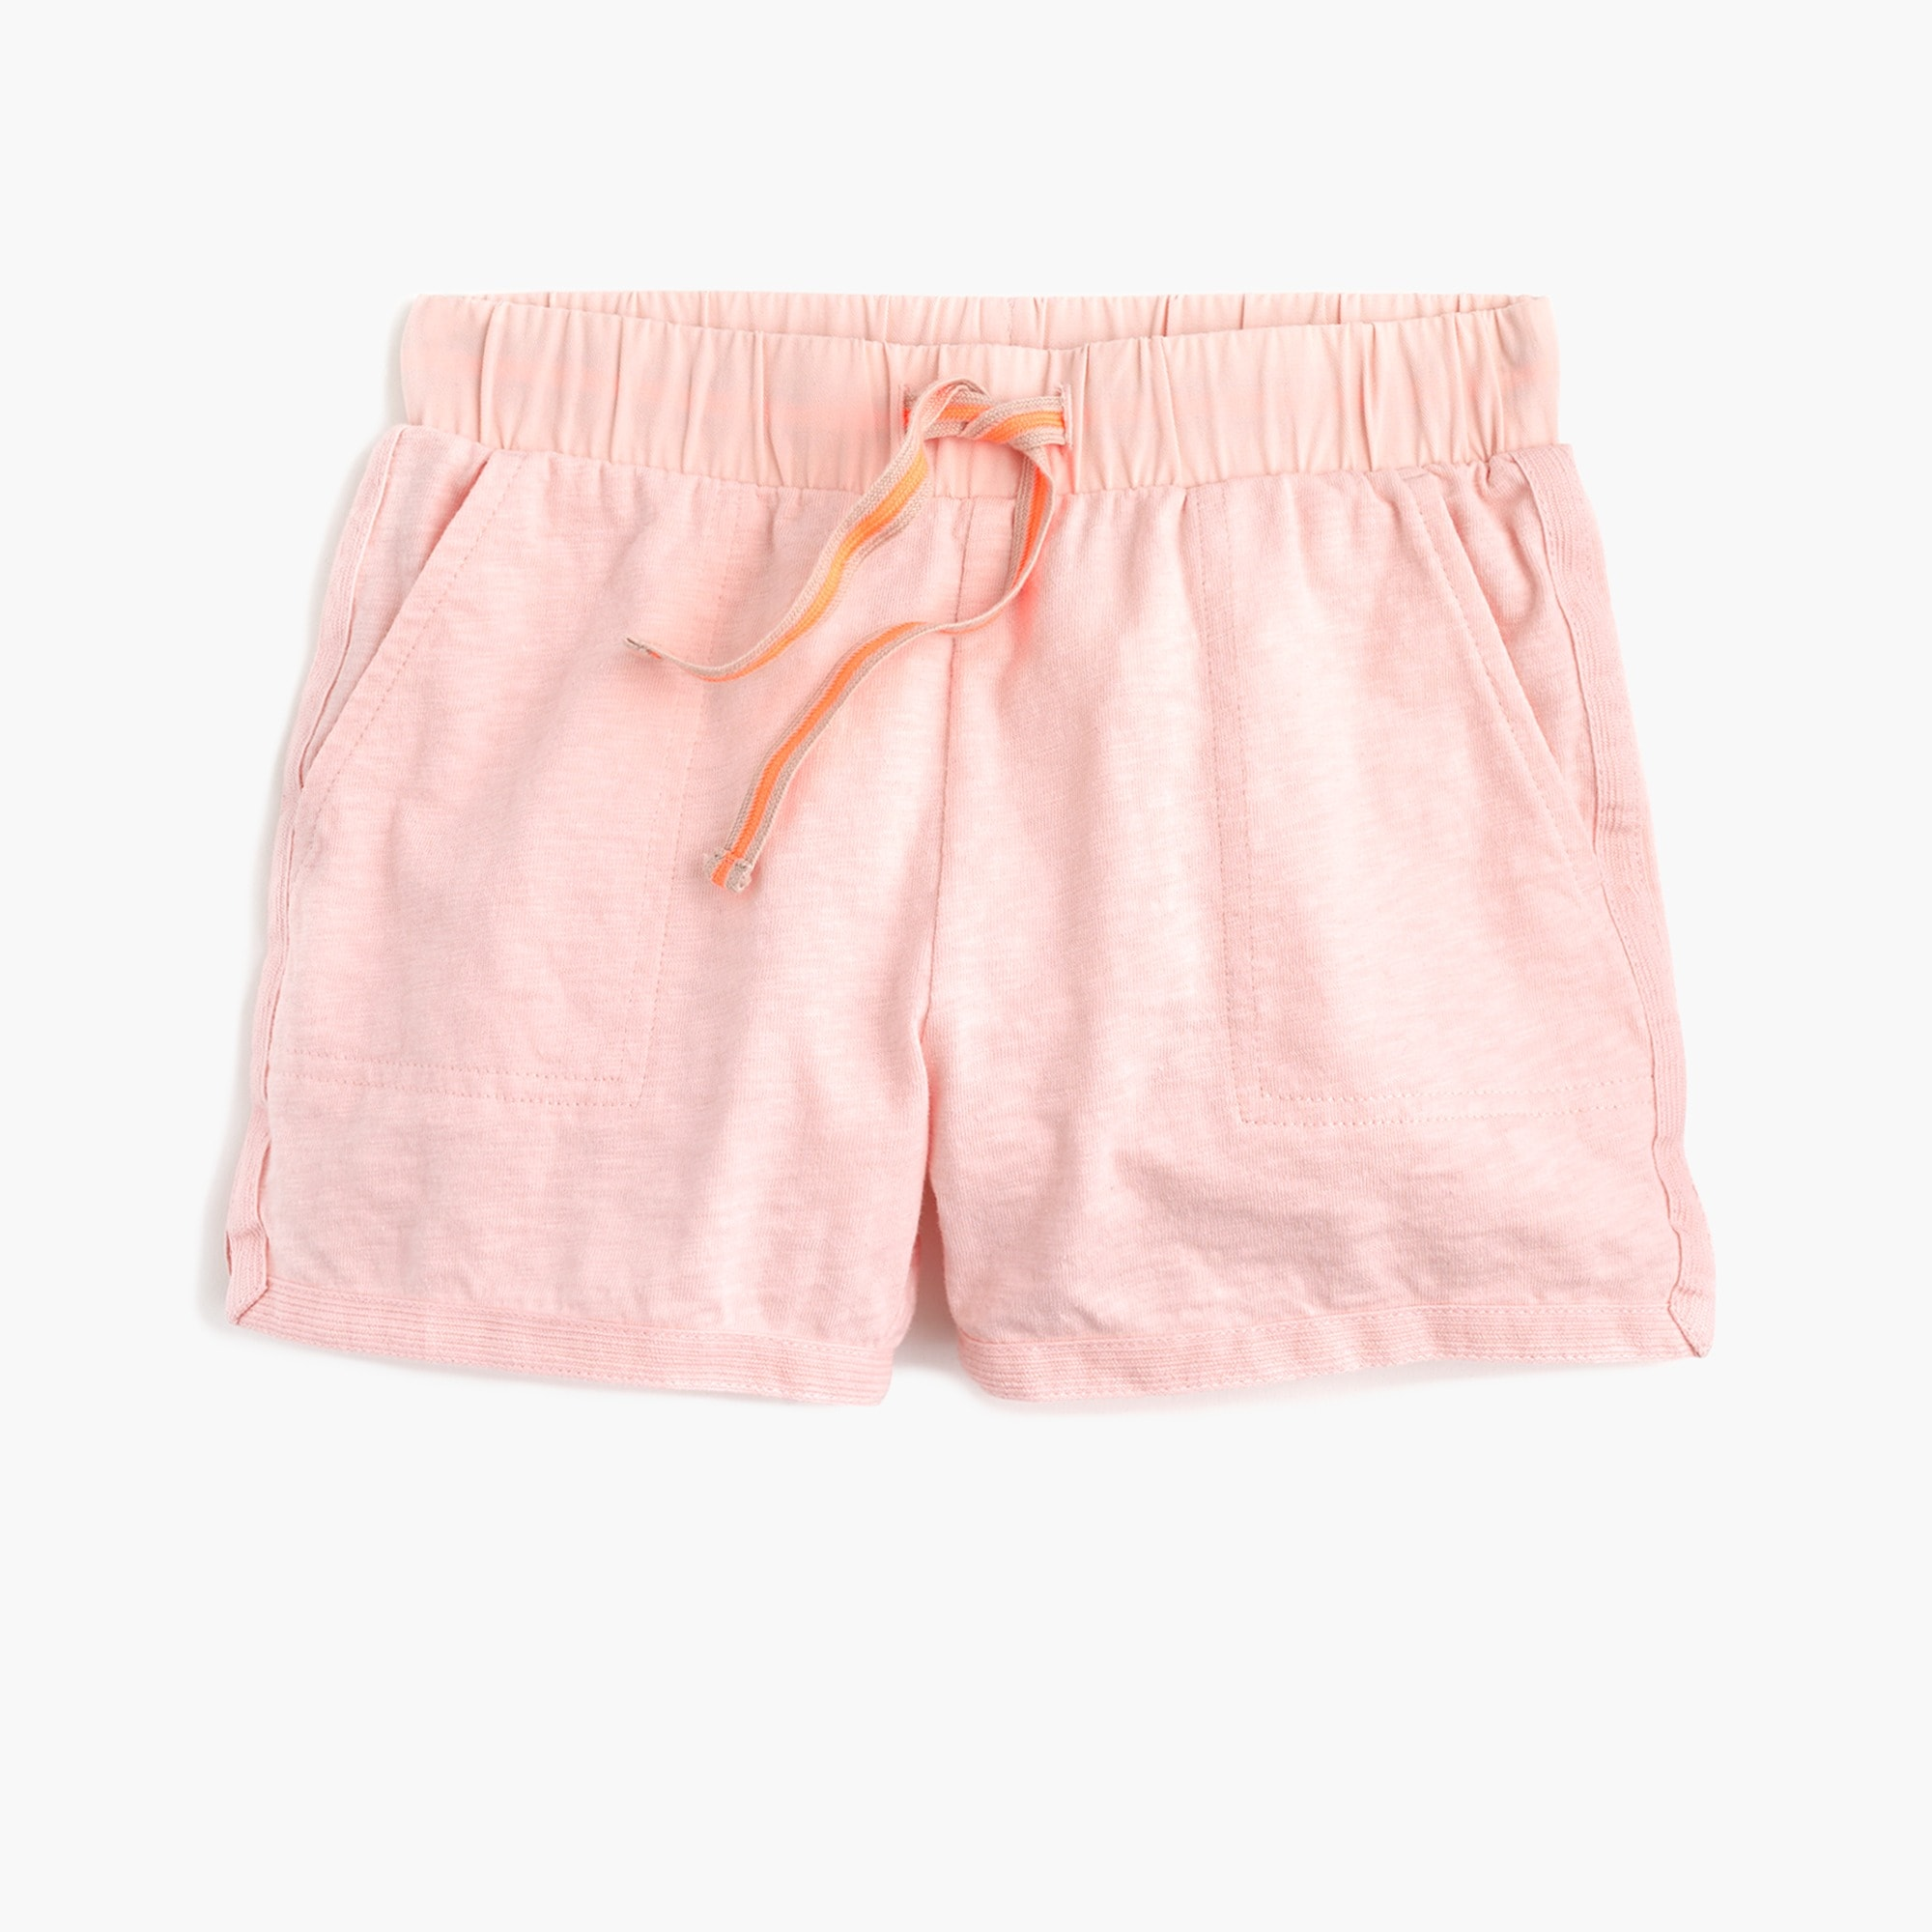 girls Girls' pull-on short in cotton jersey